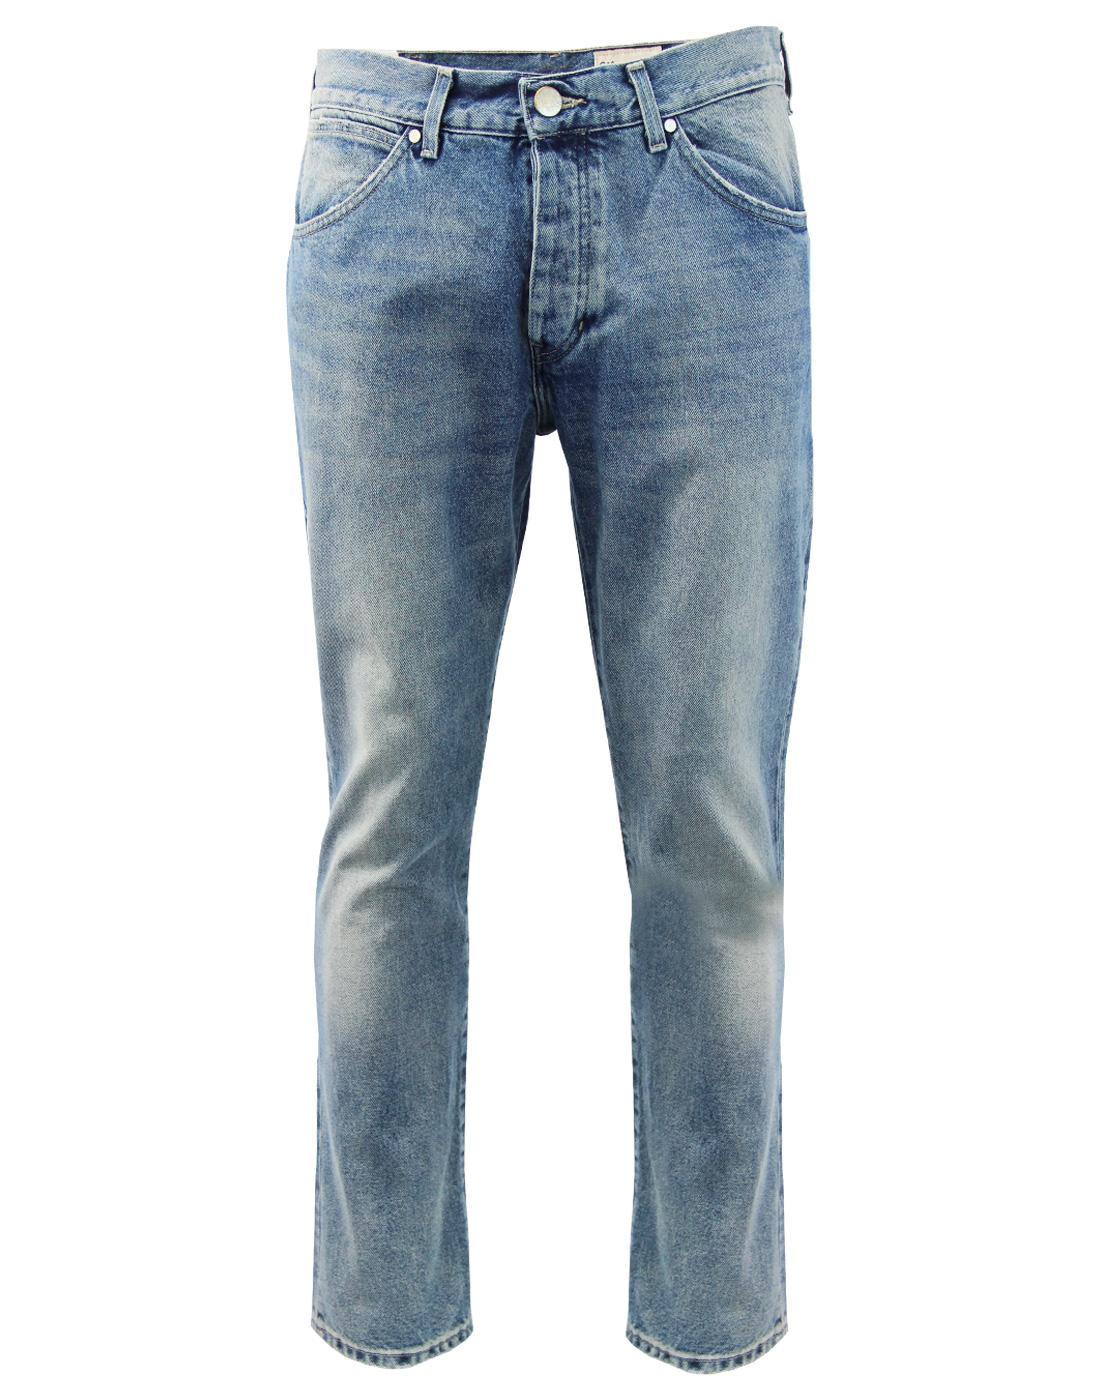 Boyton WRANGLER Retro Mod Regular Tapered Jeans